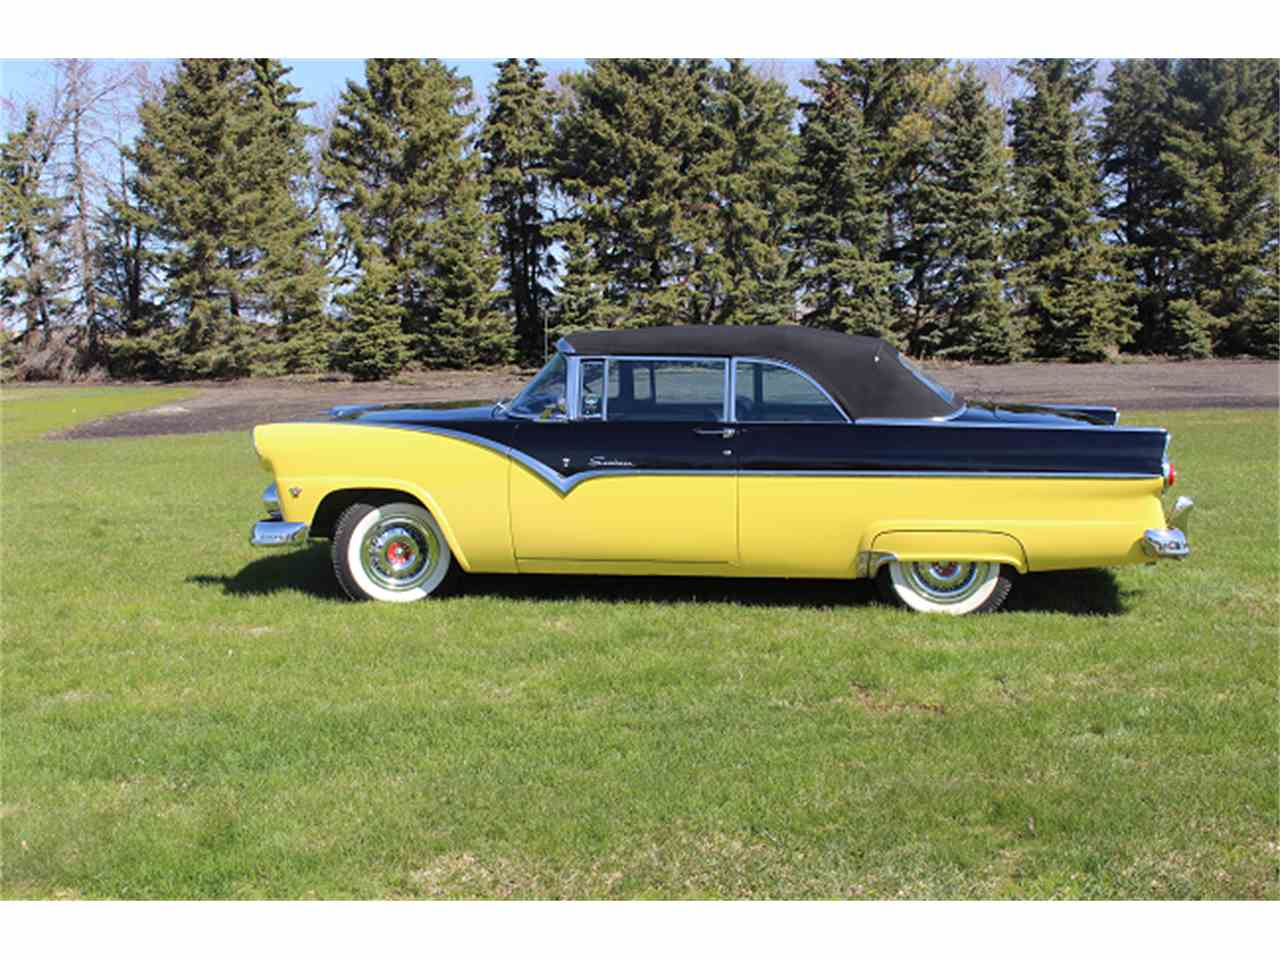 1955 ford fairlane crown victoria blog cars on line - 1955 Ford Fairlane Sunliner 980726